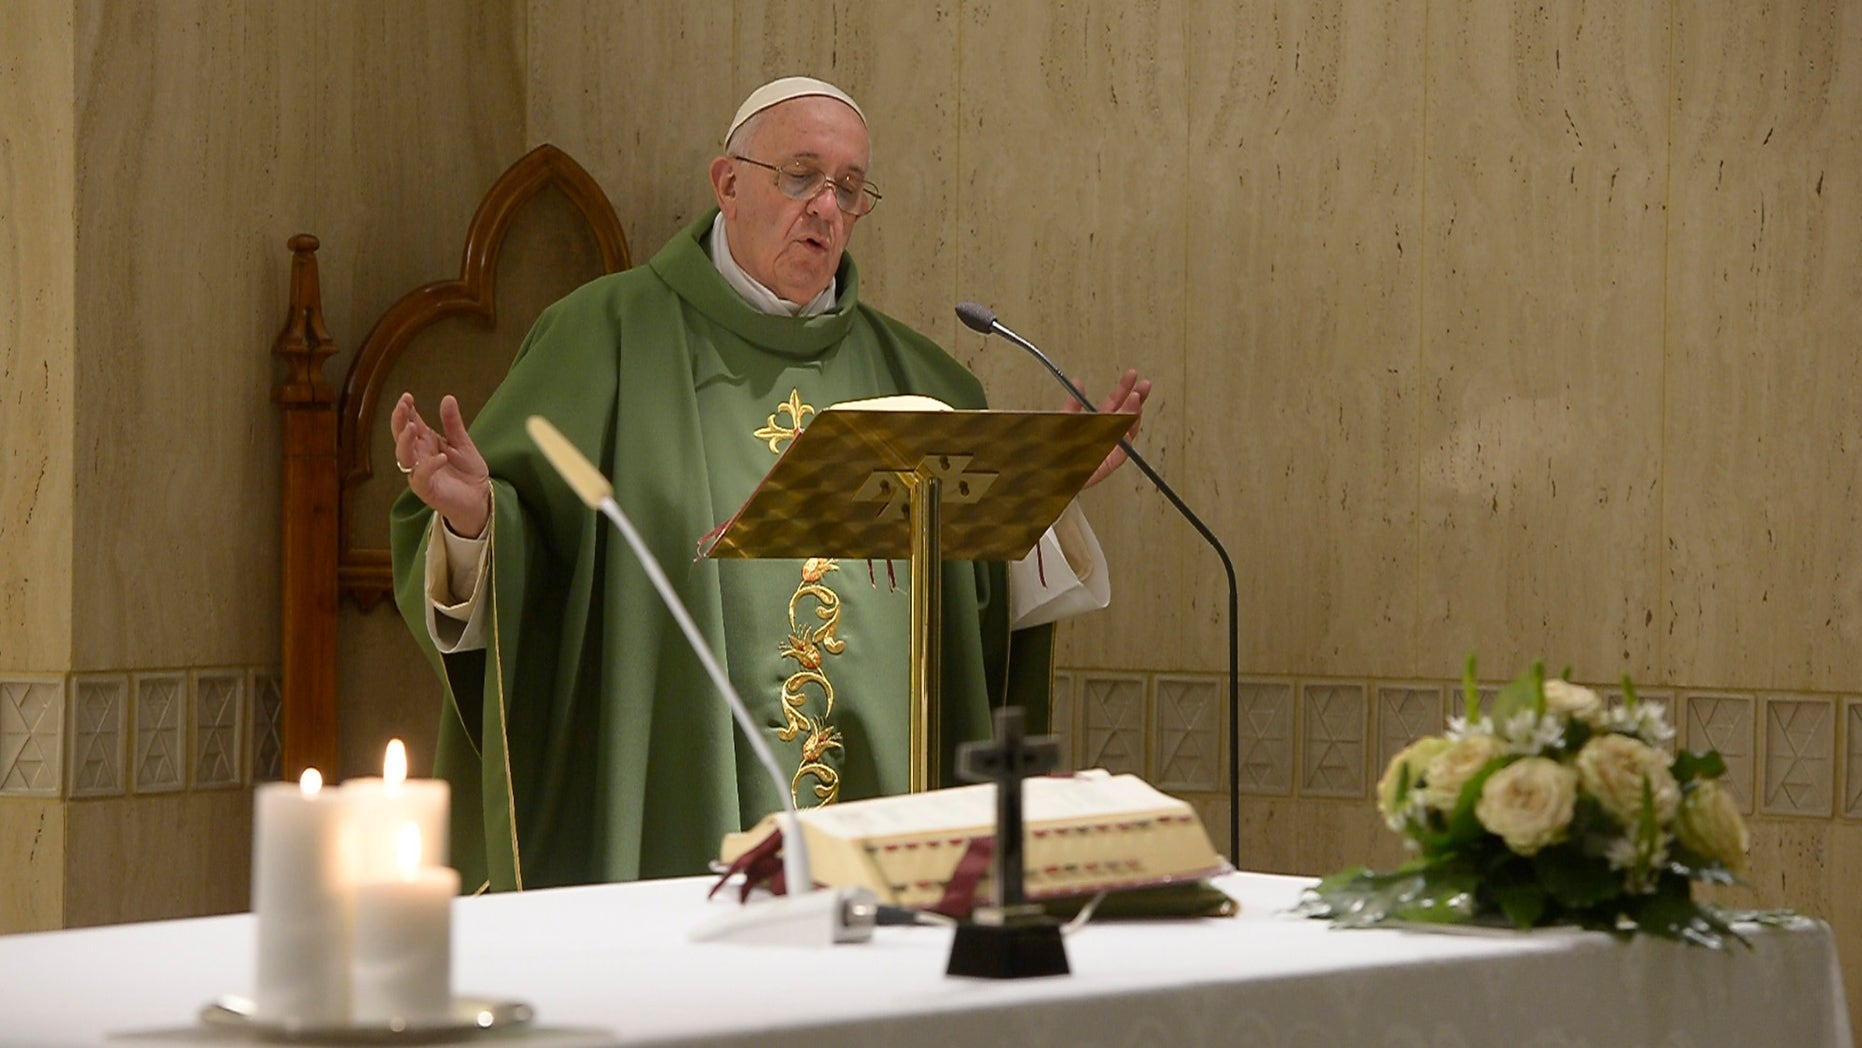 """Pope Francis celebrates a mass at the Vatican's Santa Marta hotel, Friday, Nov. 6, 2015.  The pontiff says it is """"sad"""" when bishops and priests are """"attached to money"""" and to advancing their careers, in his first public comments following the latest leaked revelations of greedy Vatican prelates resisting his efforts to reform Holy See finances and administration. Francis made the impromptu remarks during his homily Friday, apparently inspired by revelations in two new books of leaked documents and conversations. (L'Osservatore Romano/Pool photo via AP)"""